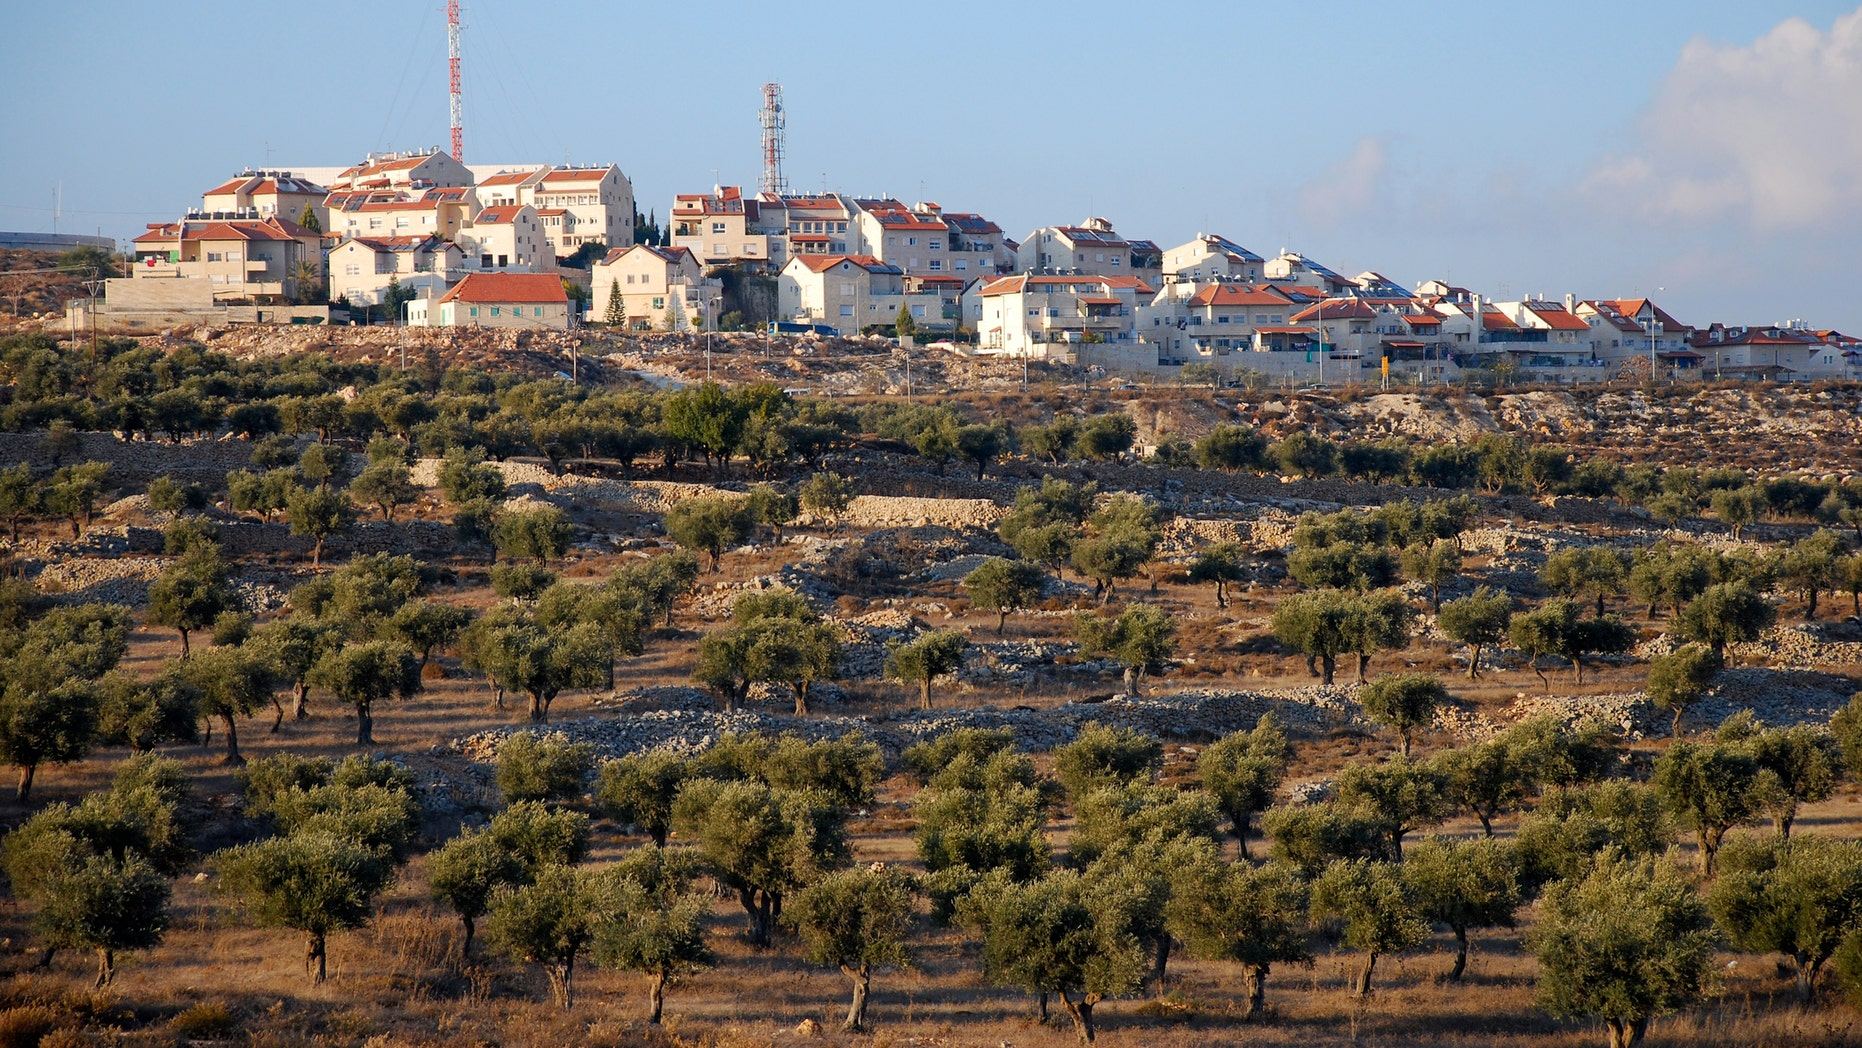 Airbnb pulls homes listed in West Bank